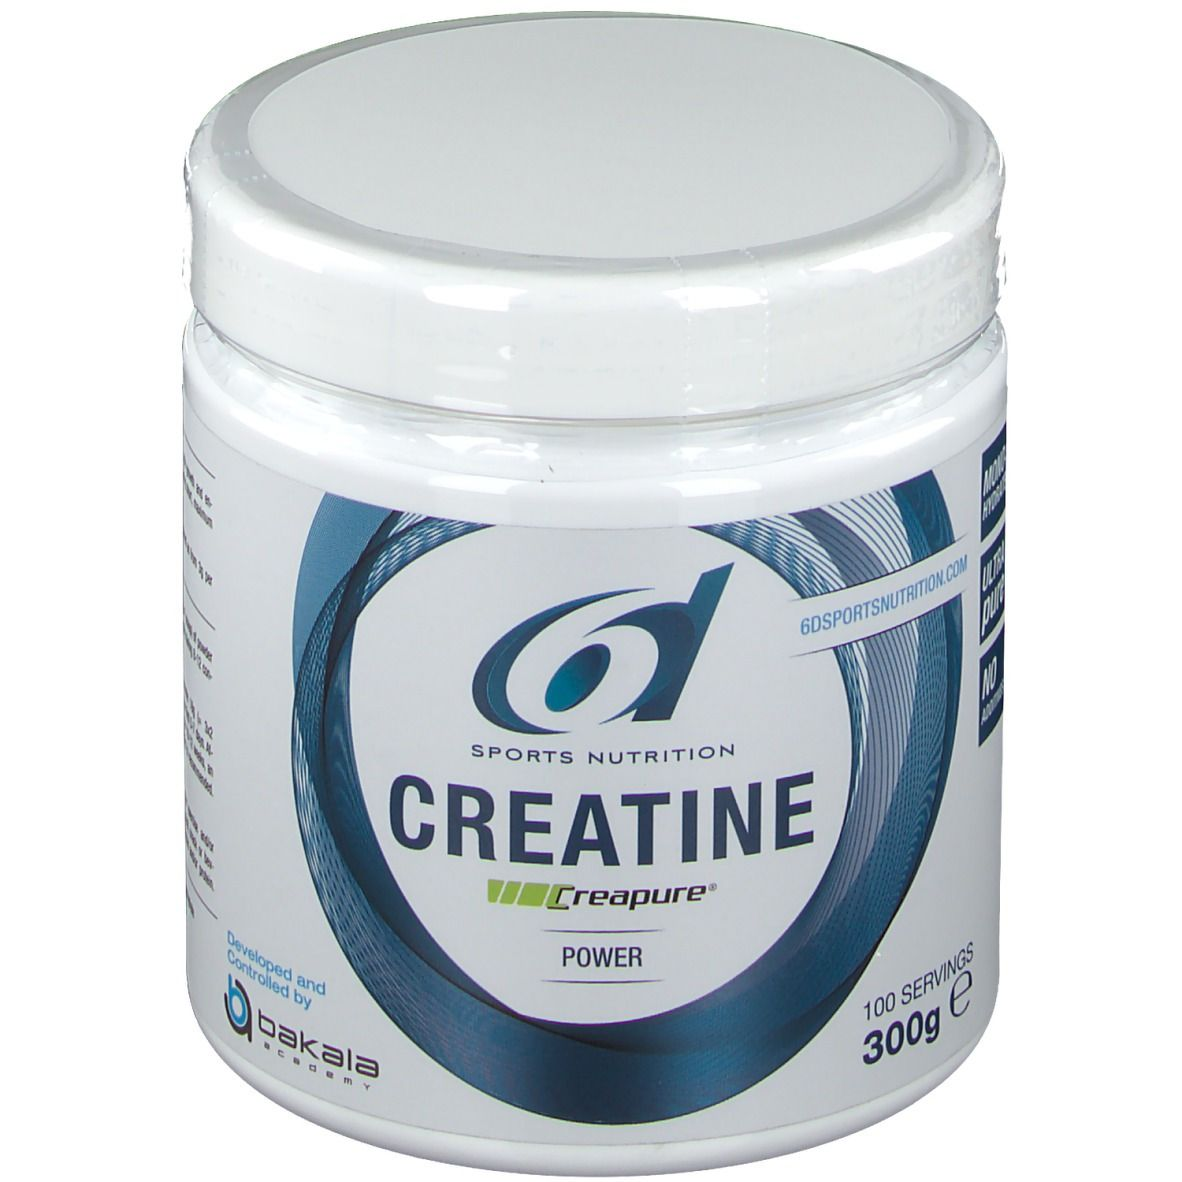 Image of 6D Sports Nutrition Creatine Creapure®